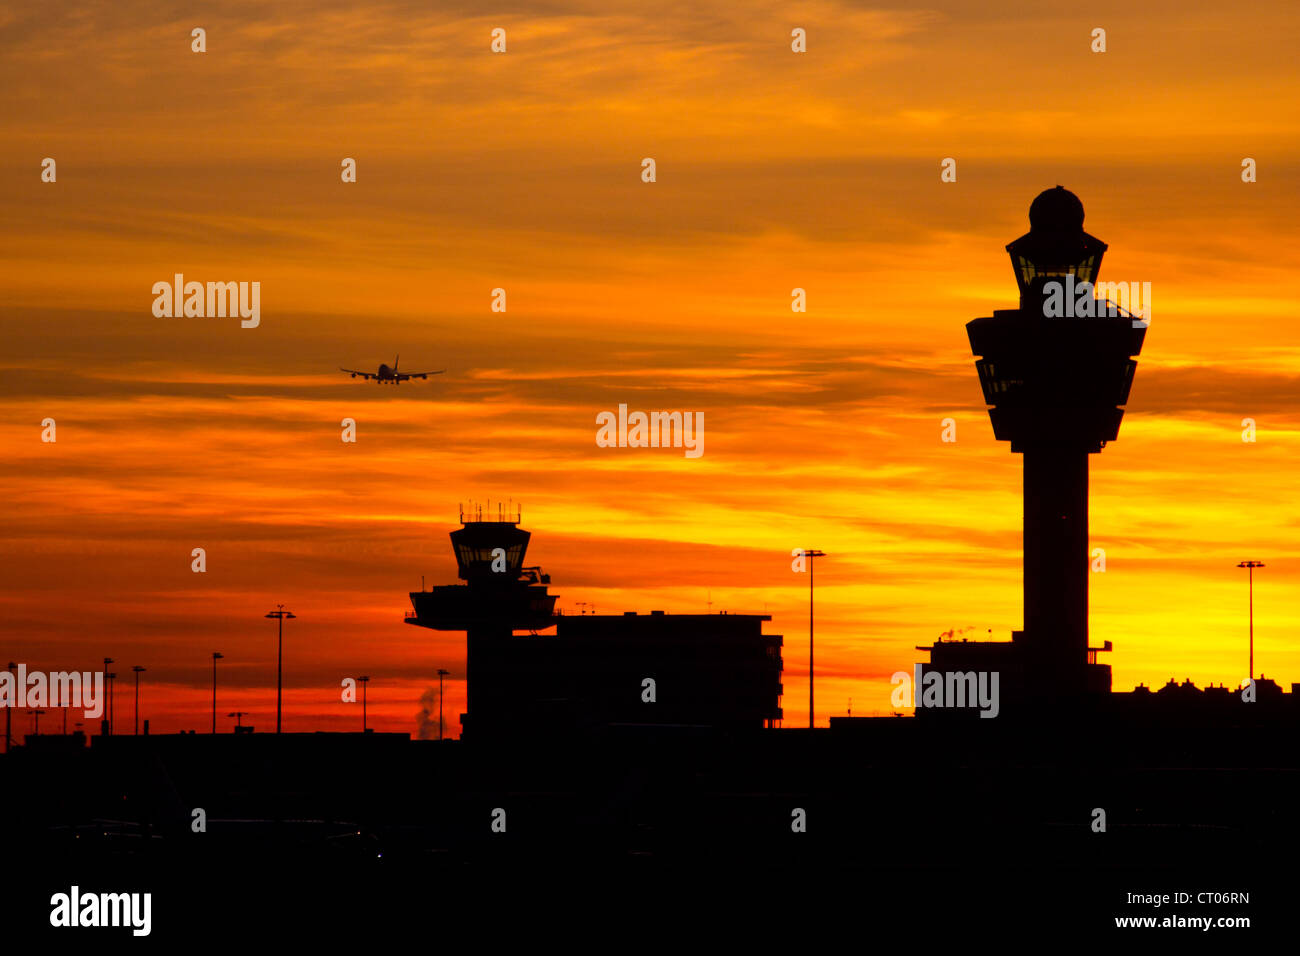 Amsterdam Schiphol Airport sunset - Stock Image